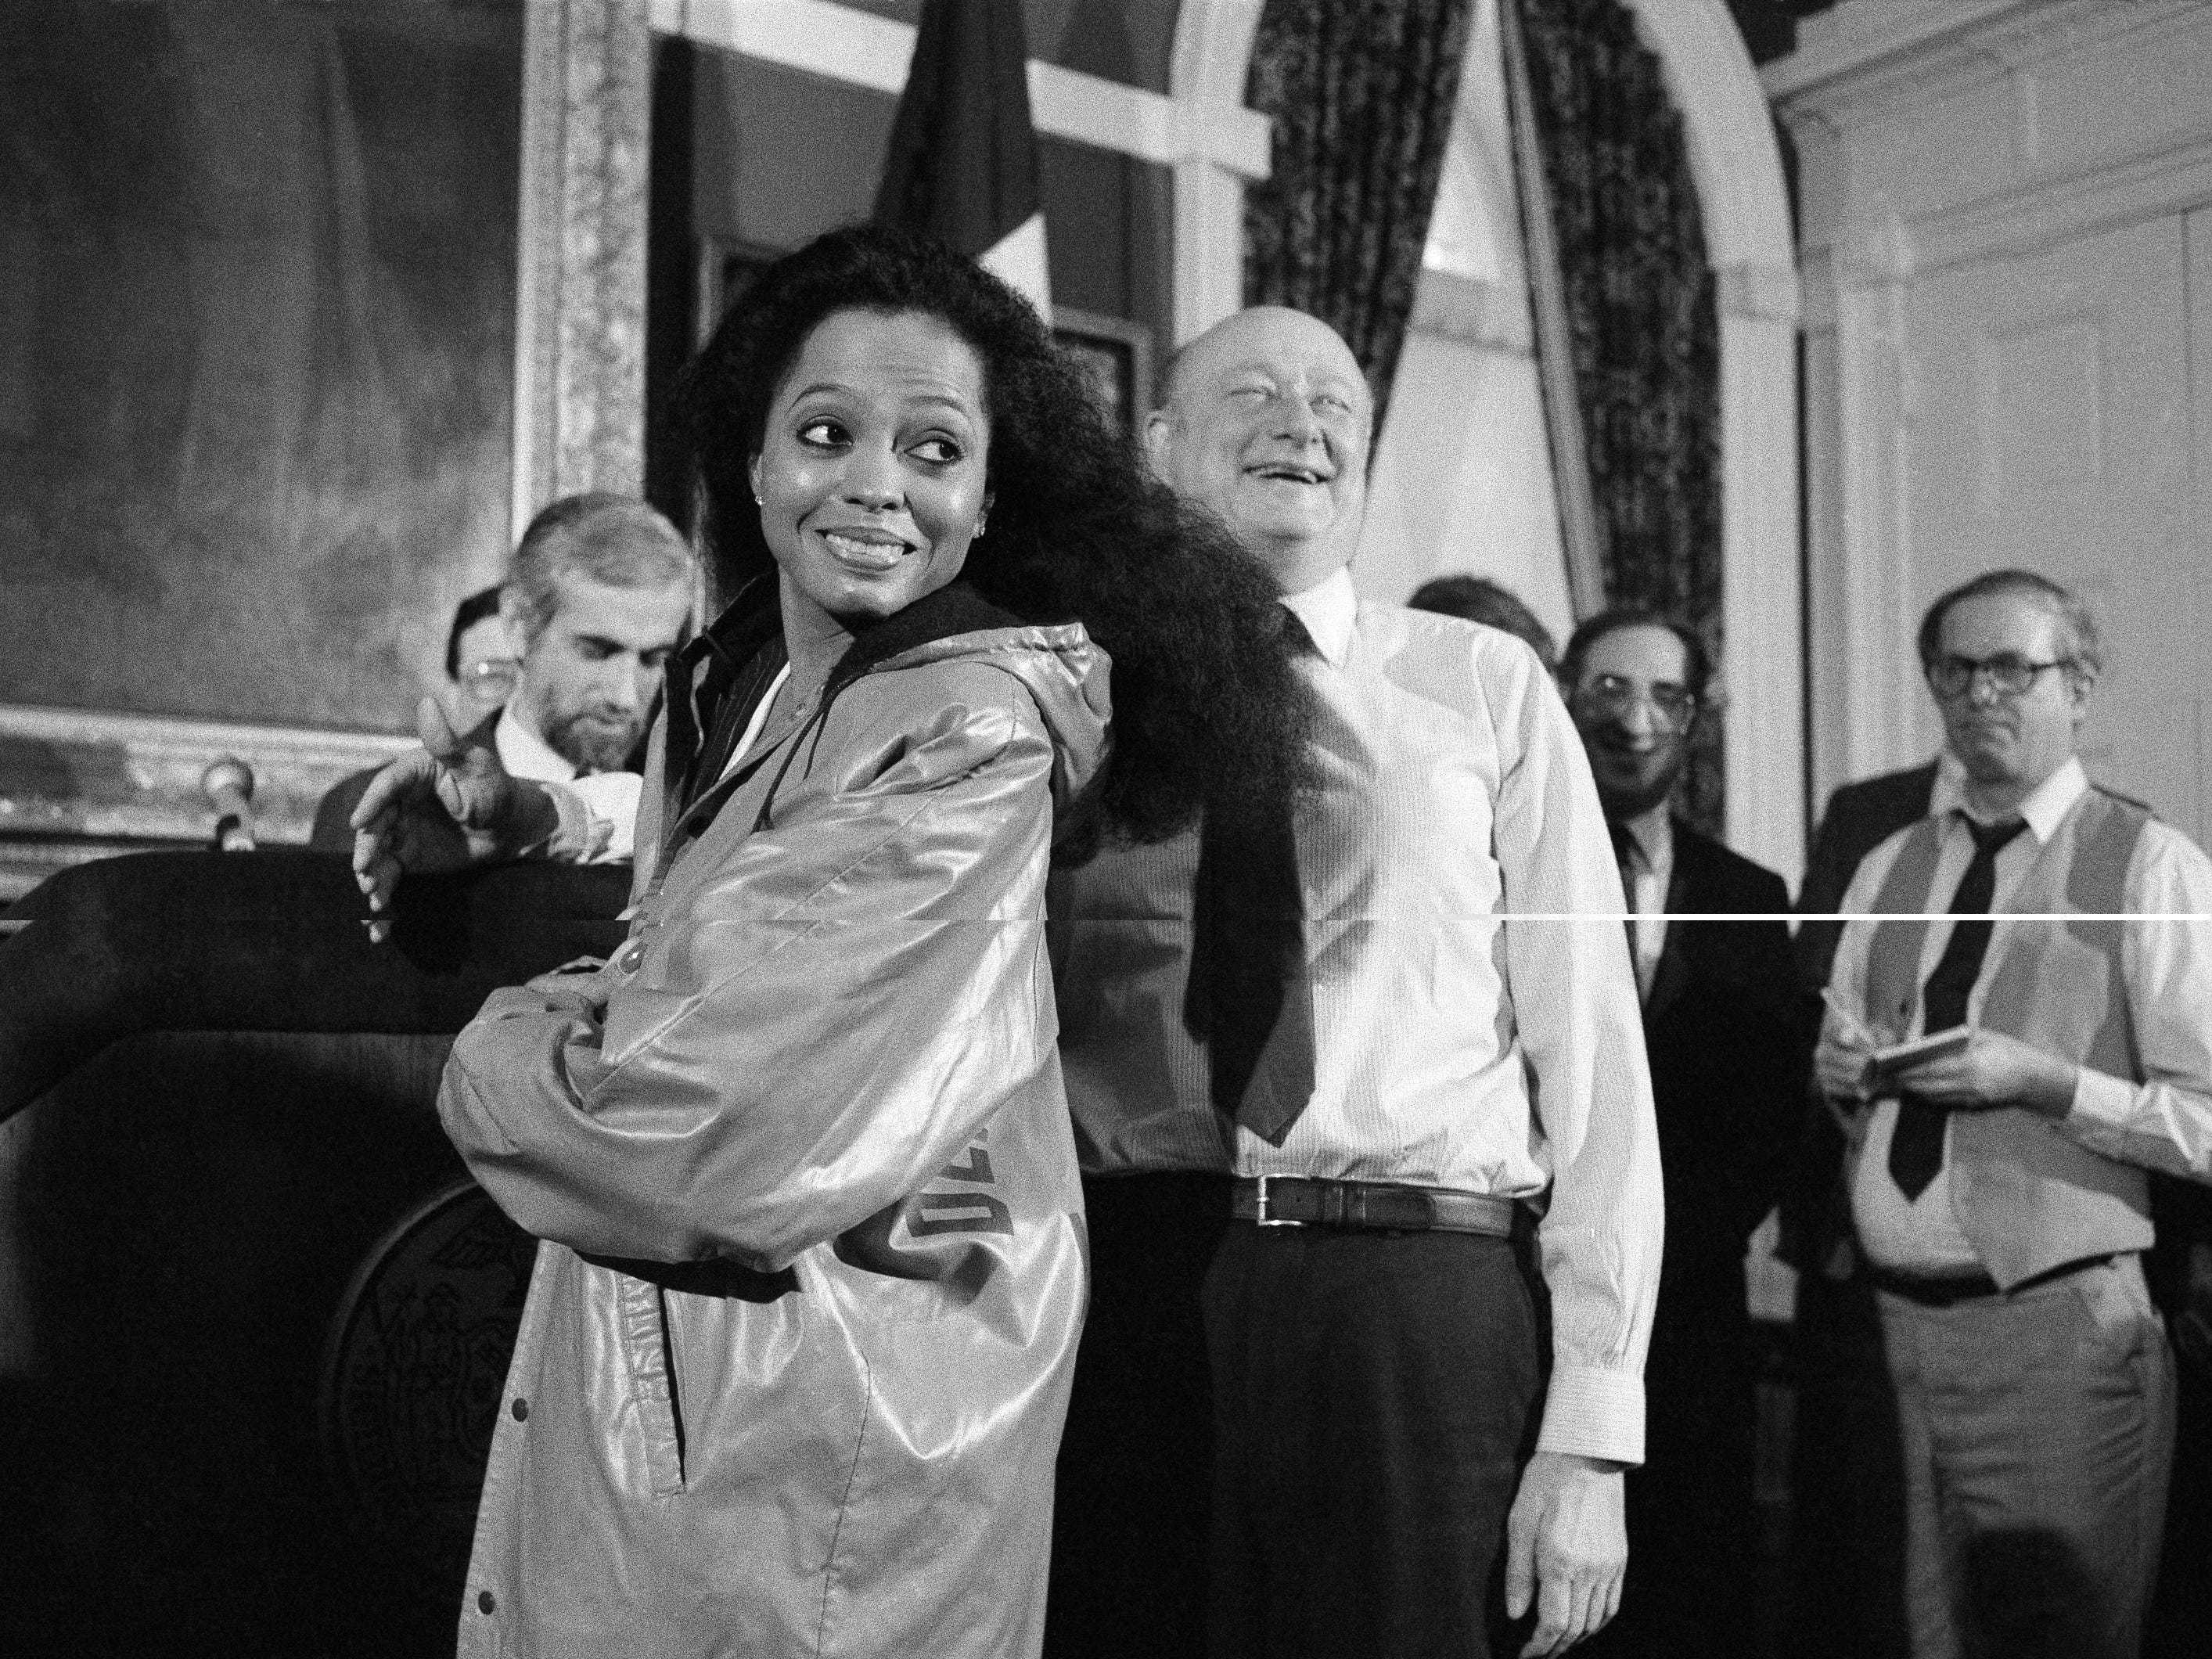 Diana Ross shows off her New York City Parks Department raincoat, Jan. 18, 1984 at City Hall. Mayor Edward Koch, right, presented the coat after Ross gave him a promised check for $250,000 for the construction of a children's playground in Central Park. The check was part of an agreement Ross made when she staged her free concert the previous summer in the park.